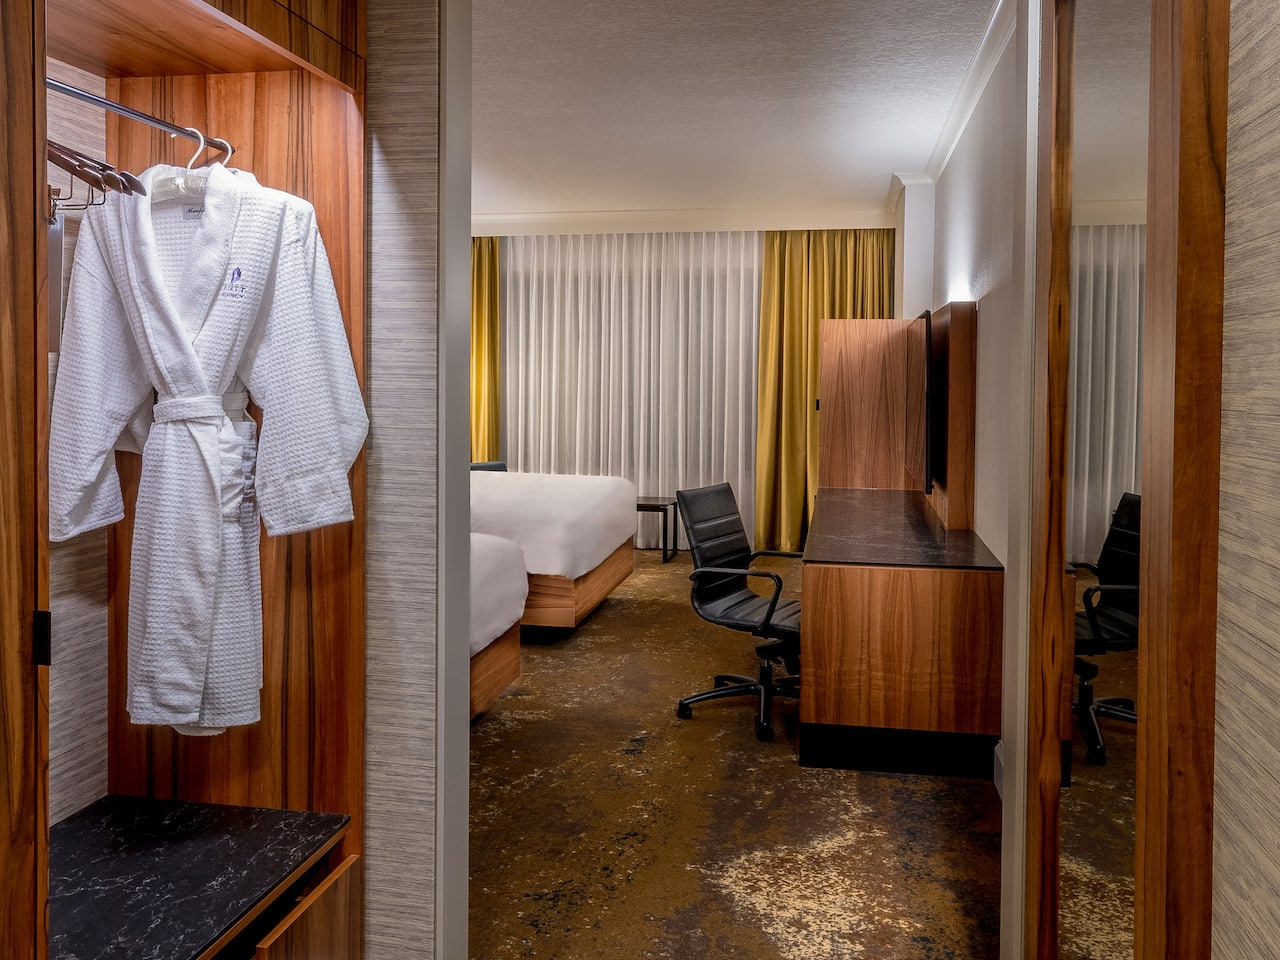 Hyatt Regency Calgary Closet with Robe